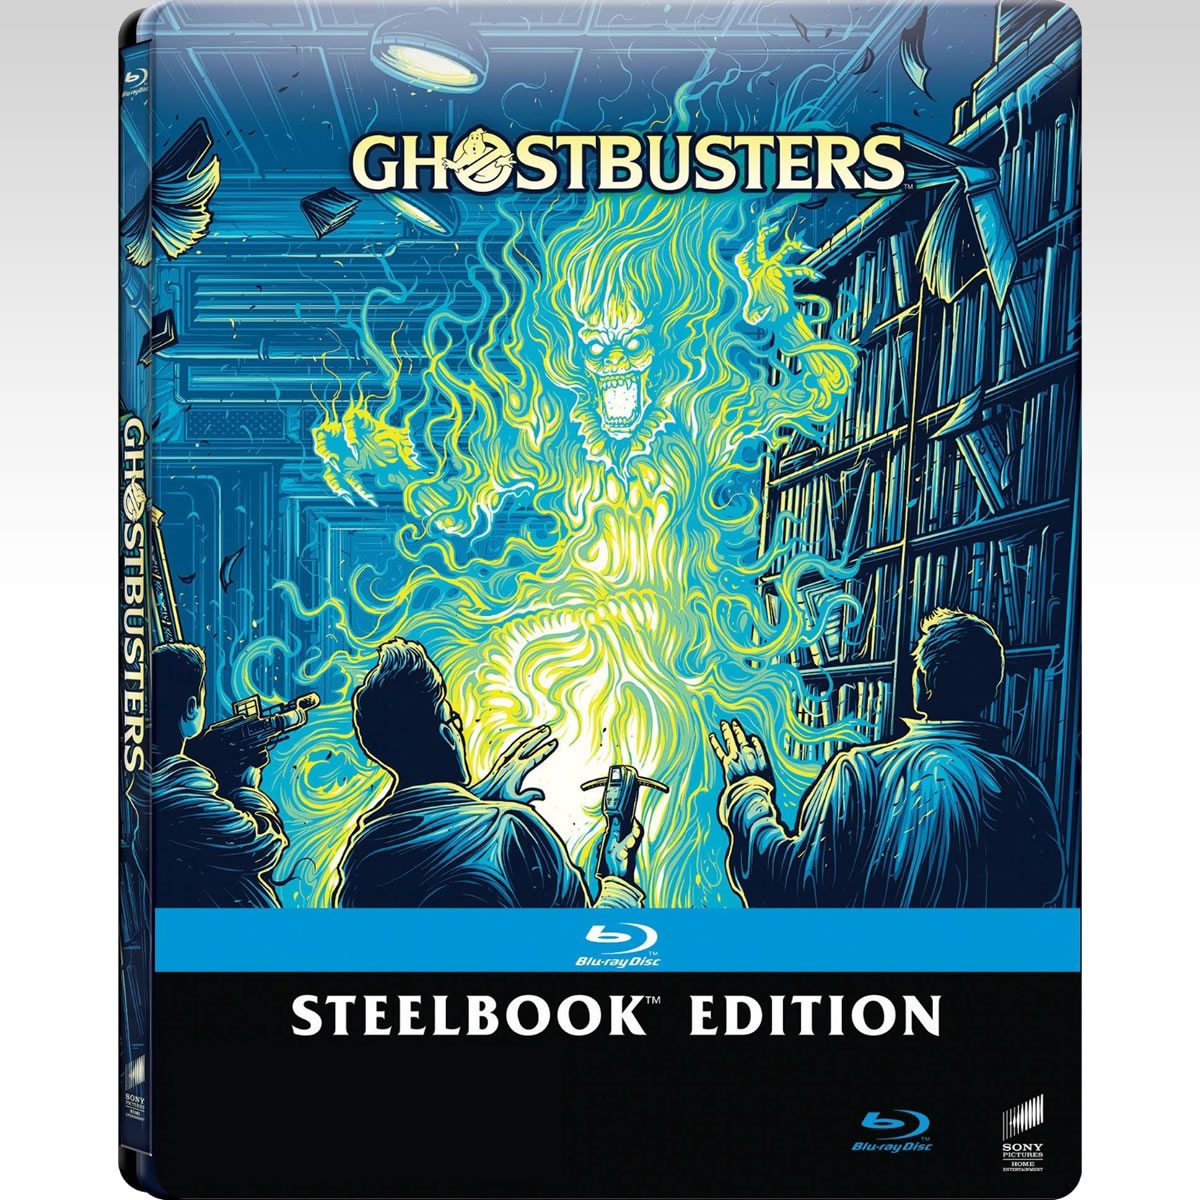 GHOSTBUSTERS - ������� ����������� [4K MASTERED]  Limited Edition Steelbook [��������� �� ���������� ����������] (BLU-RAY)